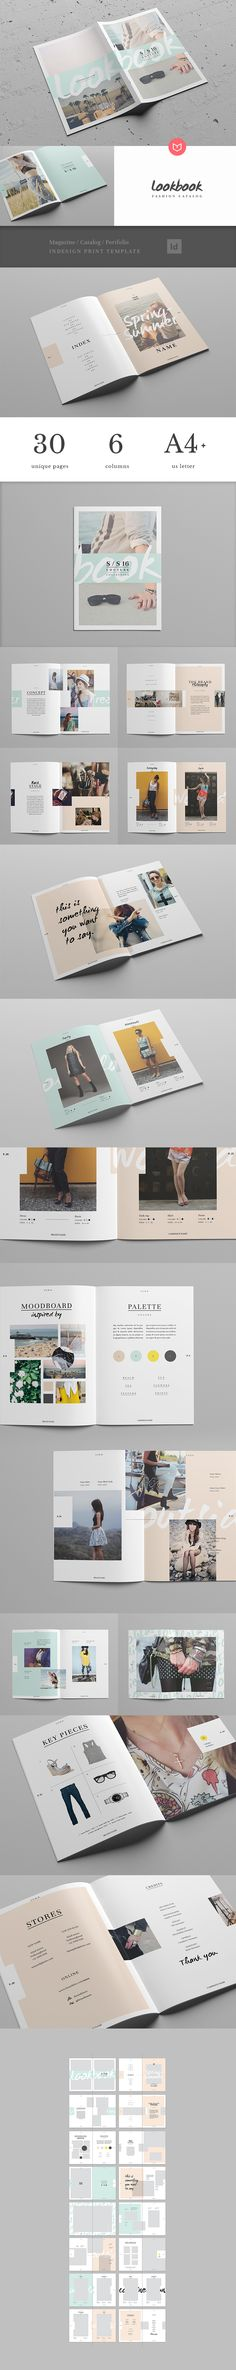 59 new ideas fashion editorial design magazine texts Design Set, Web Design, Graphic Design Layouts, Layout Design, Lookbook Layout, Lookbook Design, Design Editorial, Editorial Layout, Typography Design